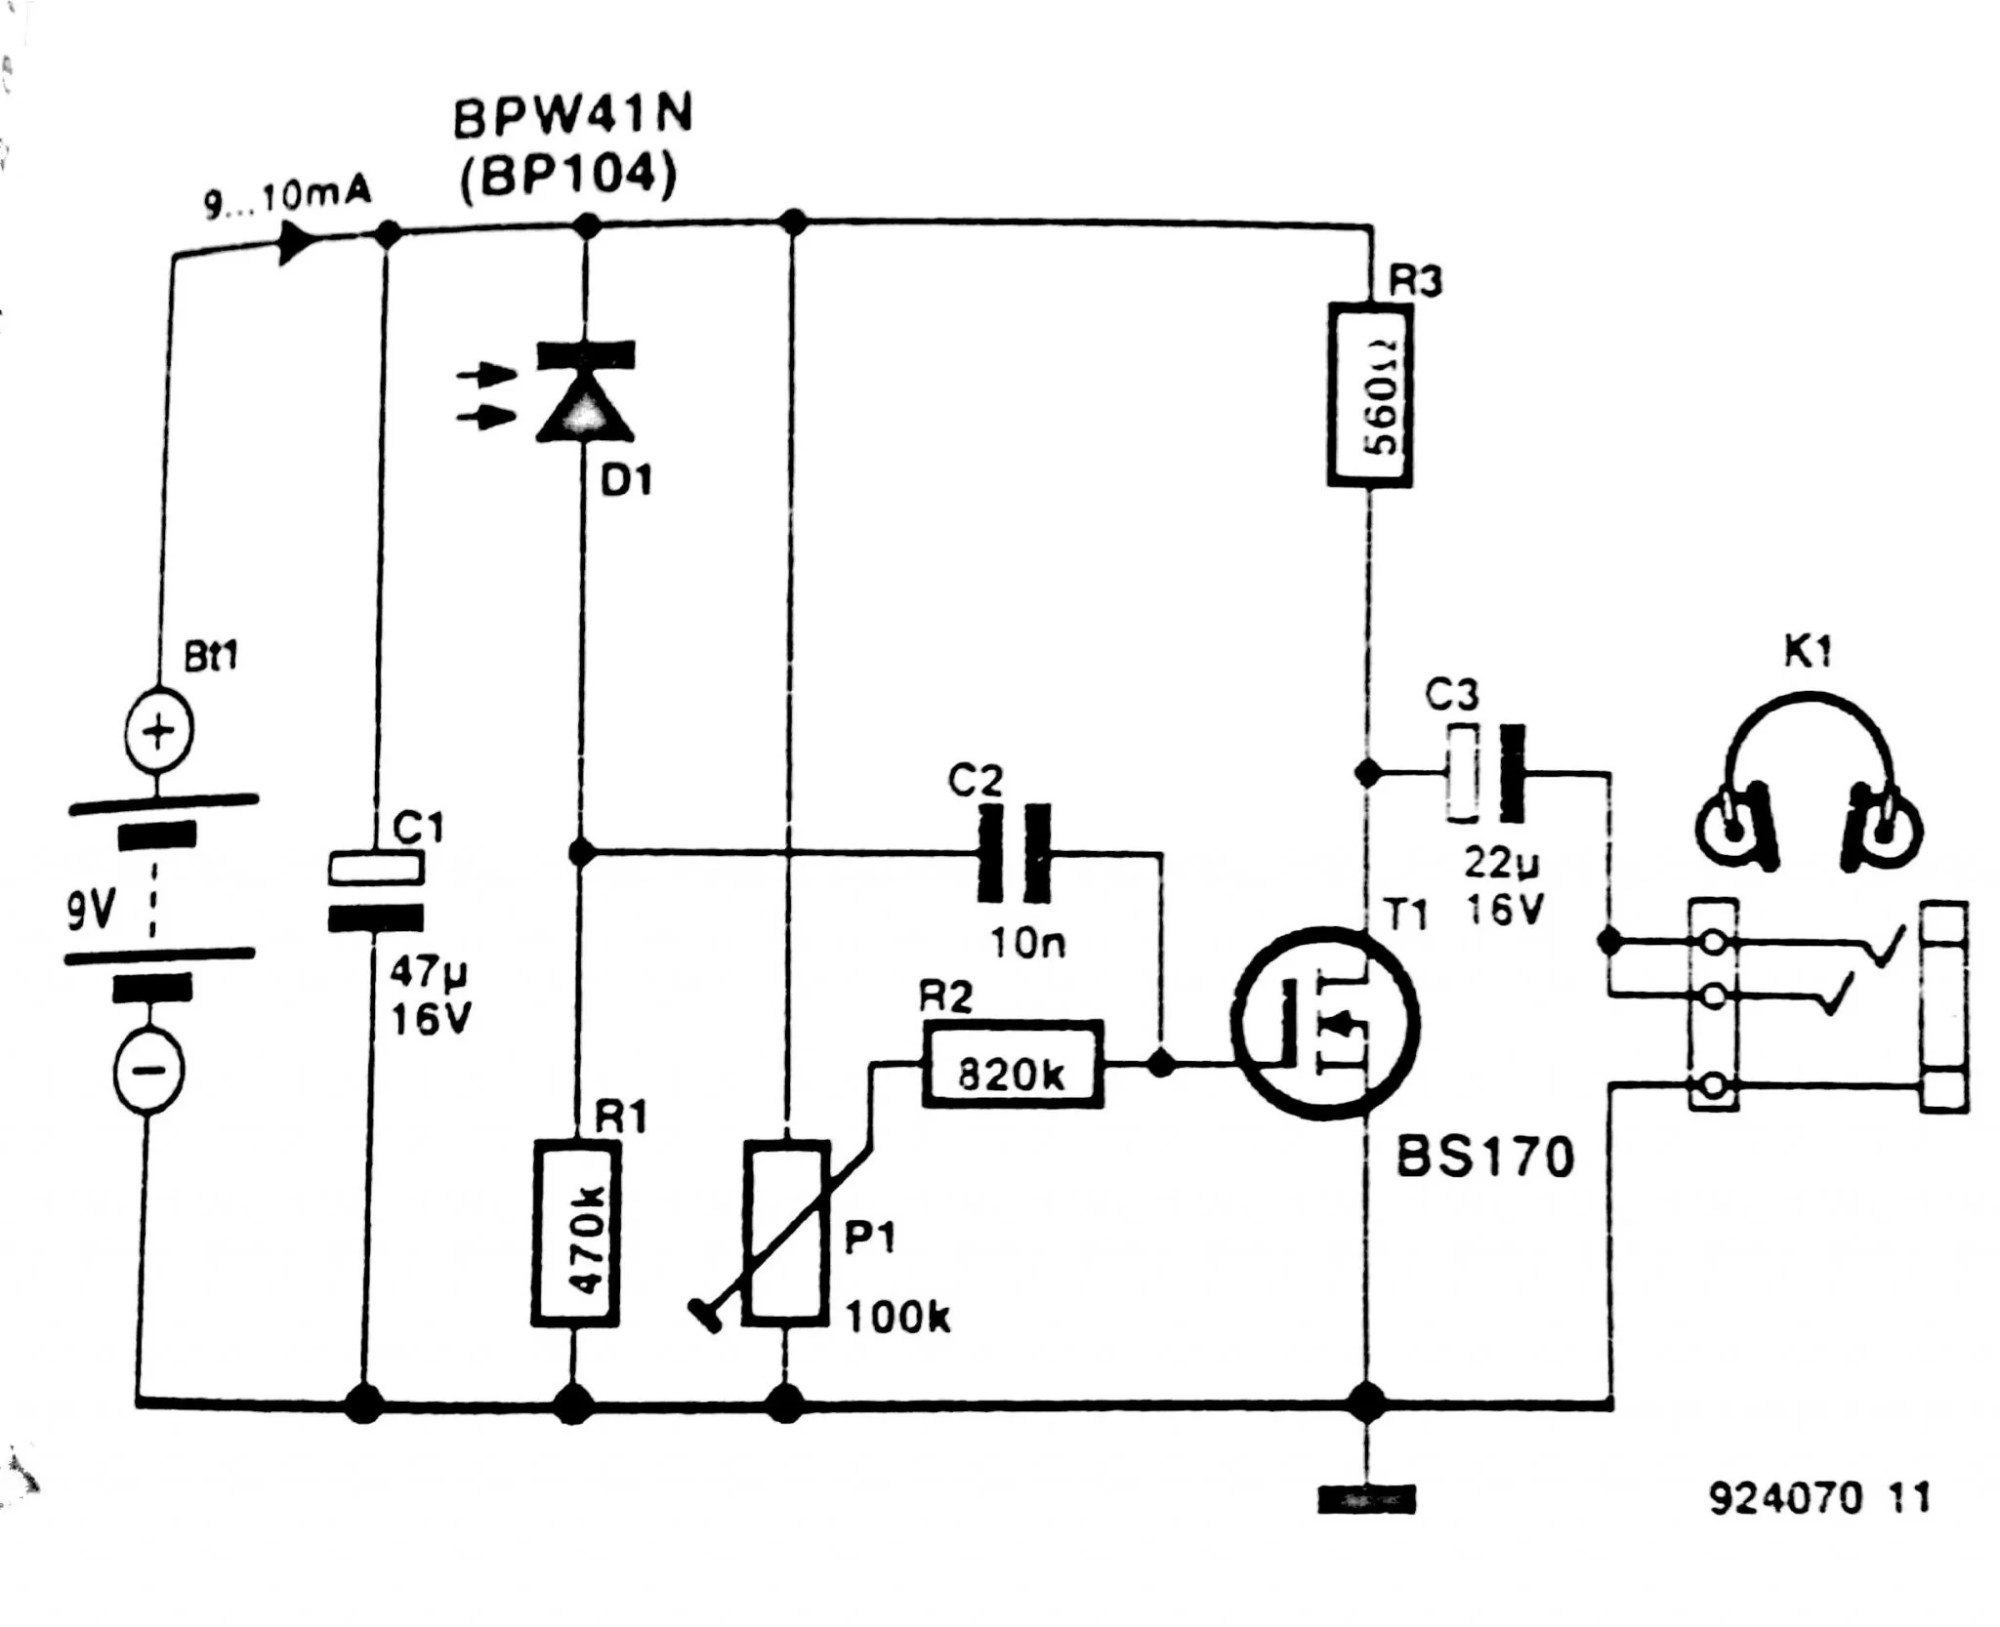 hight resolution of infrared headphone receiver circuit diagram apple headphones wiring diagram samsung headphones wiring diagram